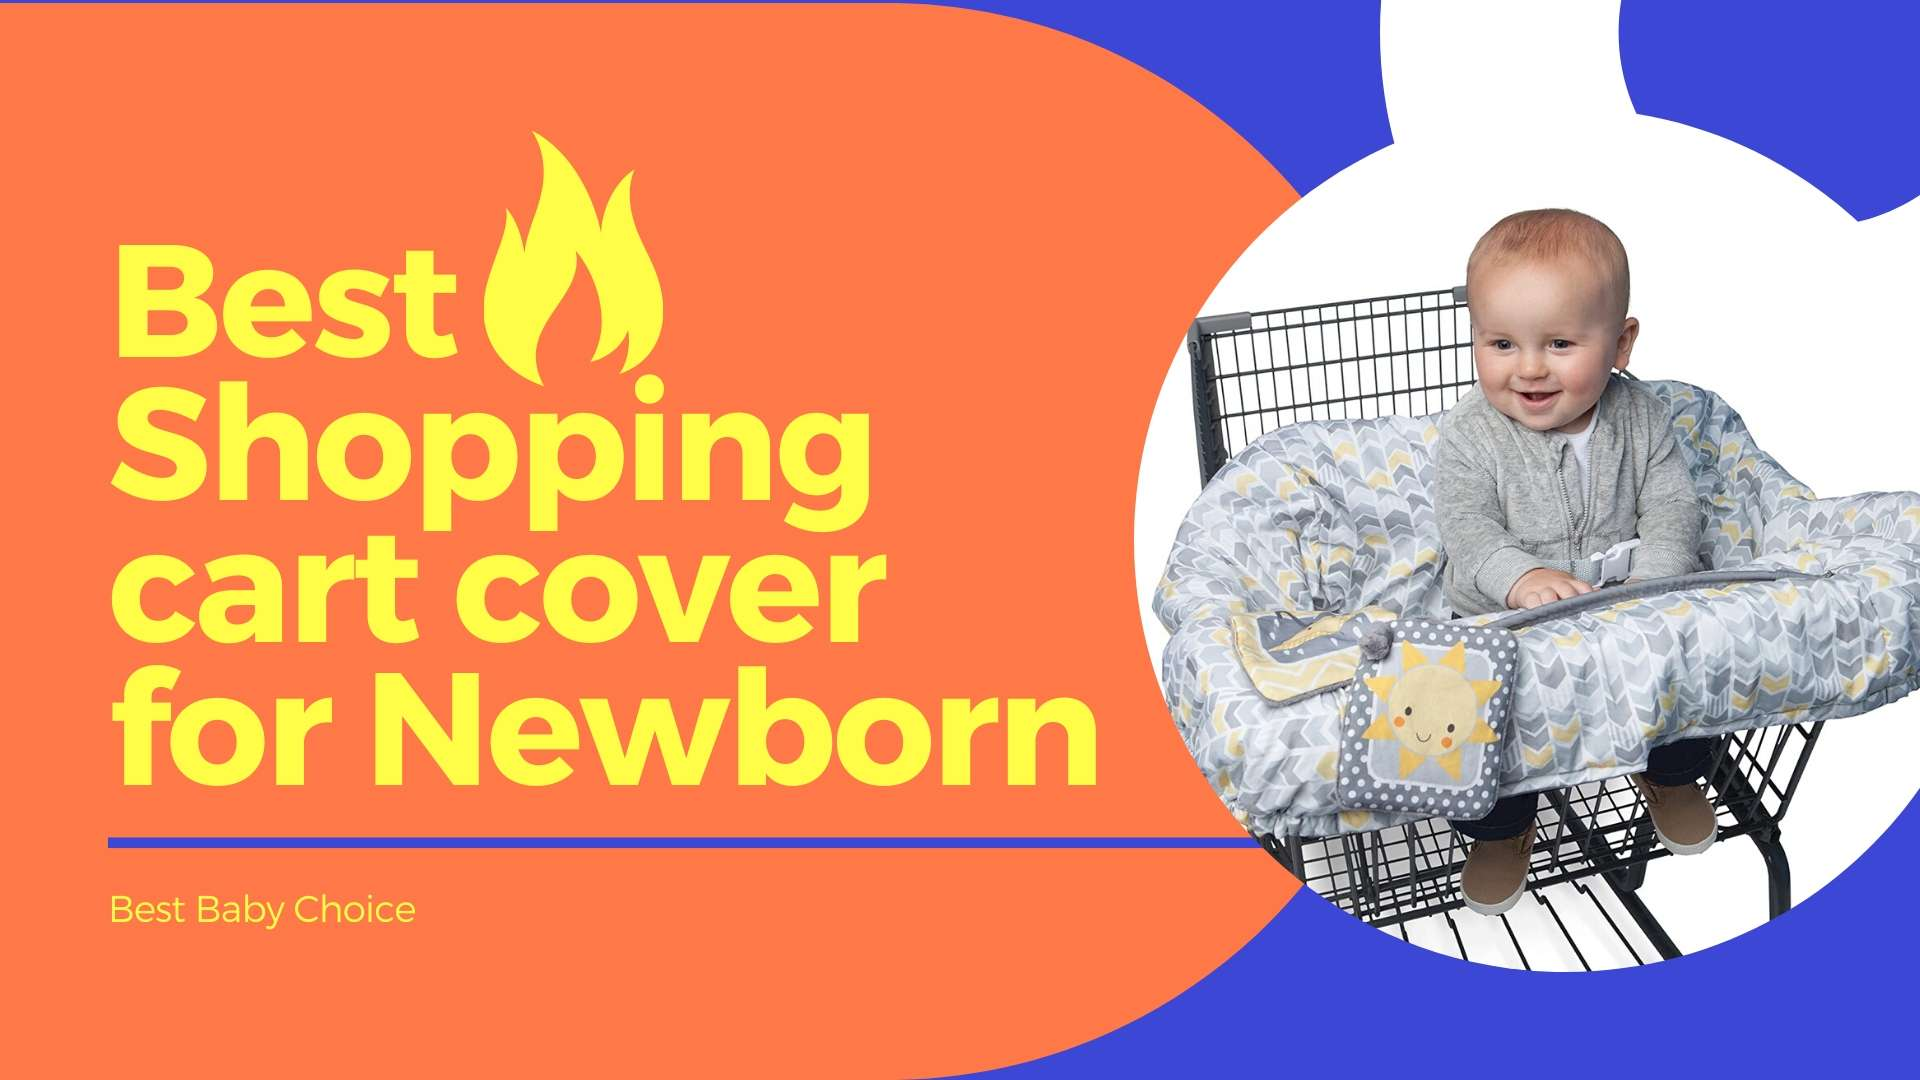 Shopping cart cover for newborn baby